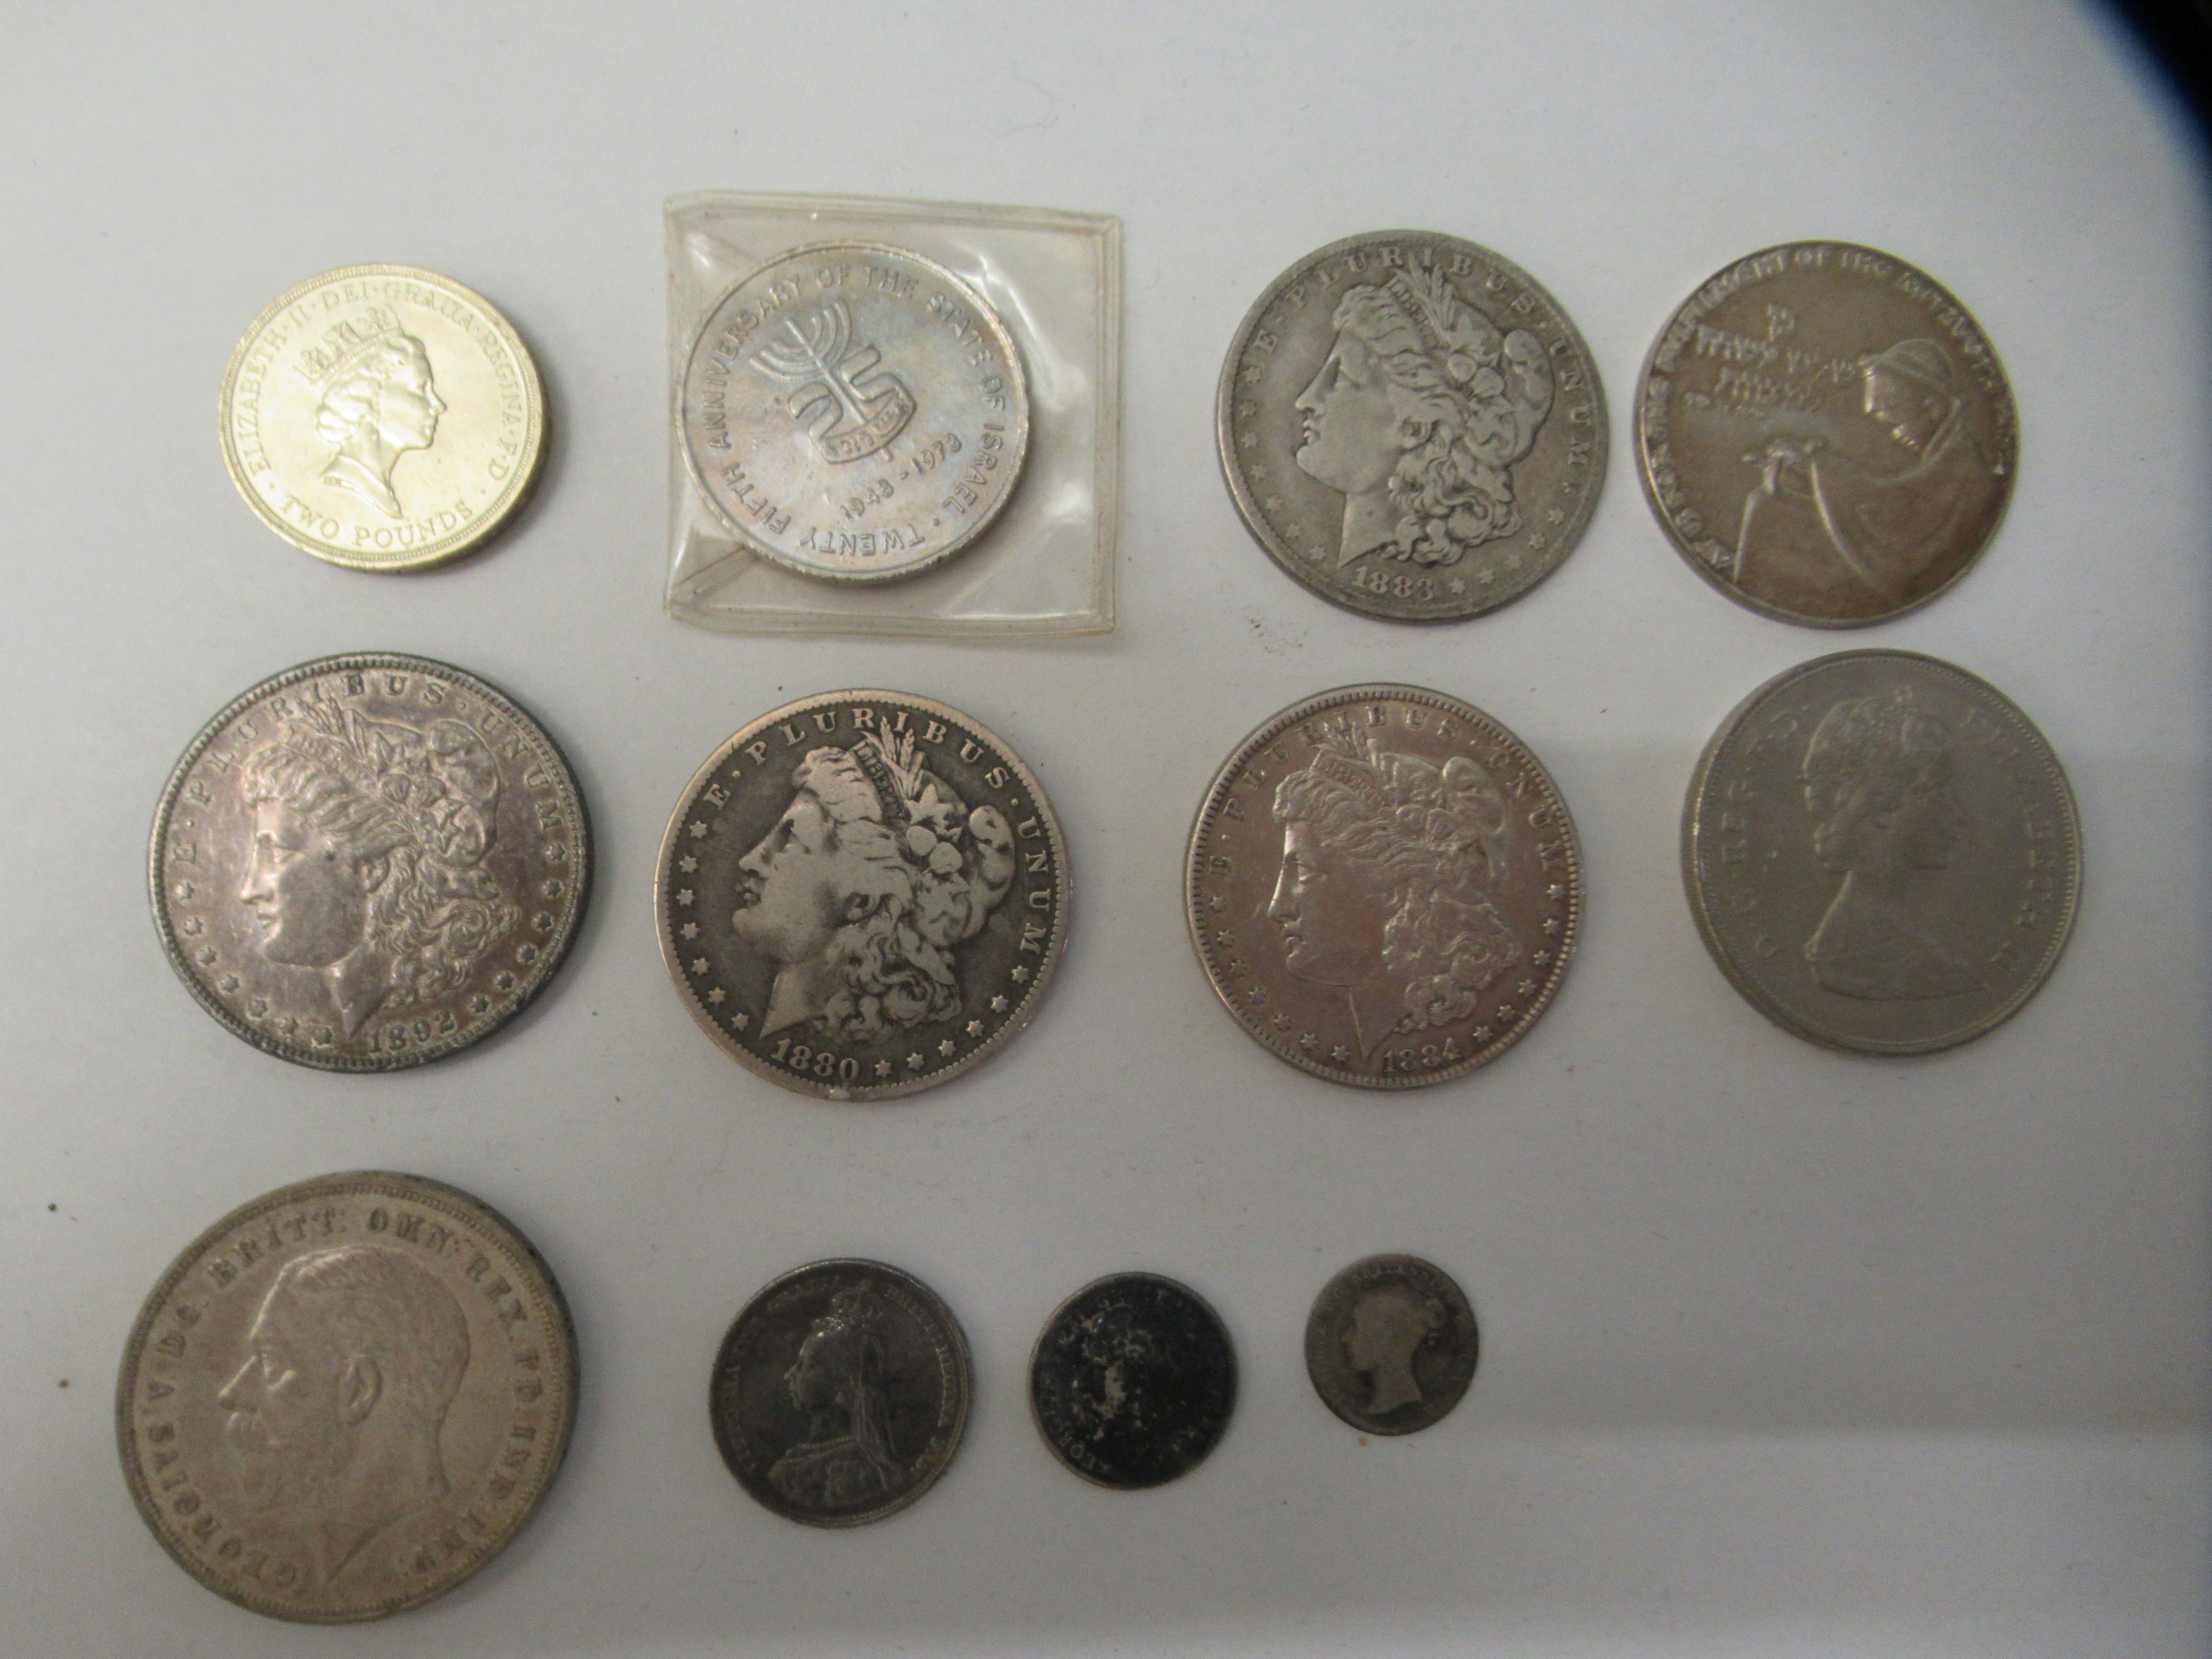 British pre-decimal and foreign coins: to include an 1883 USA one dollar - Image 2 of 7